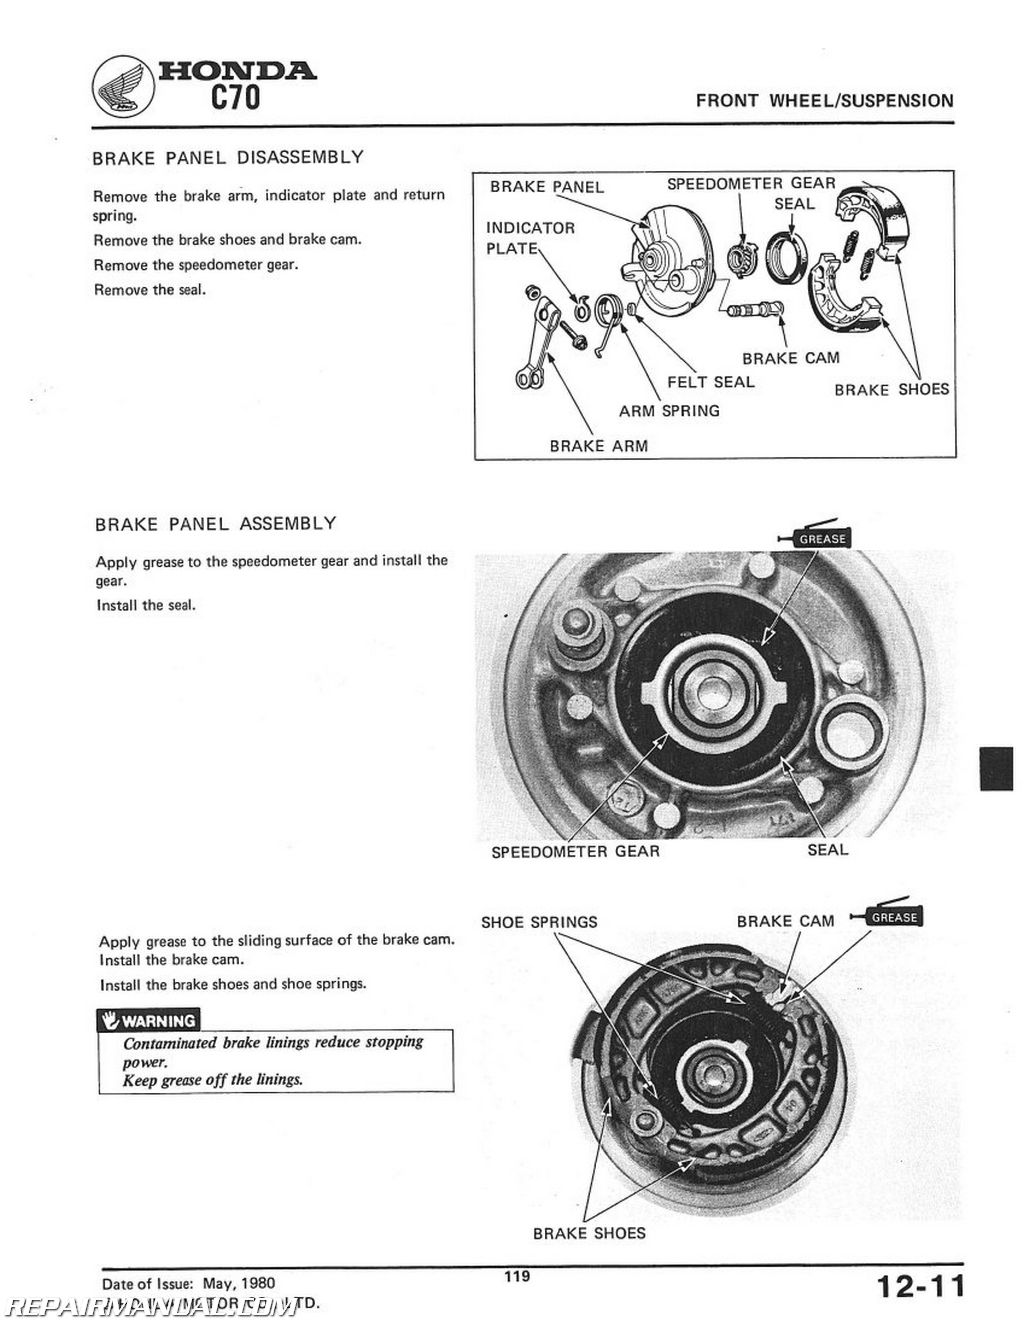 1980 1982 honda c70 scooter workshop service repair manual rh repairmanual com honda c70 passport service manual pdf honda c70 service manual